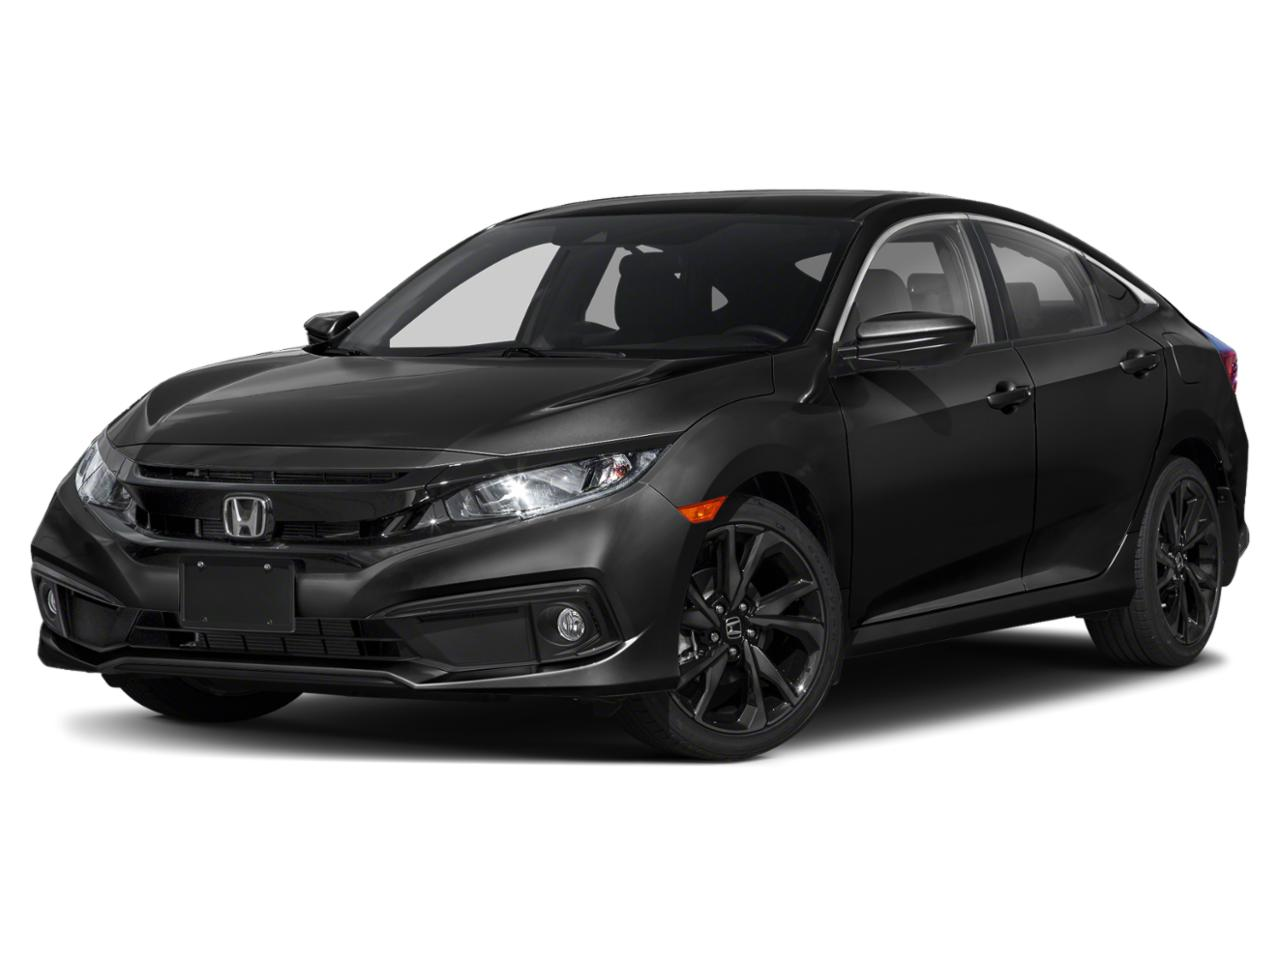 2019 Honda Civic Sedan Vehicle Photo in Jasper, GA 30143